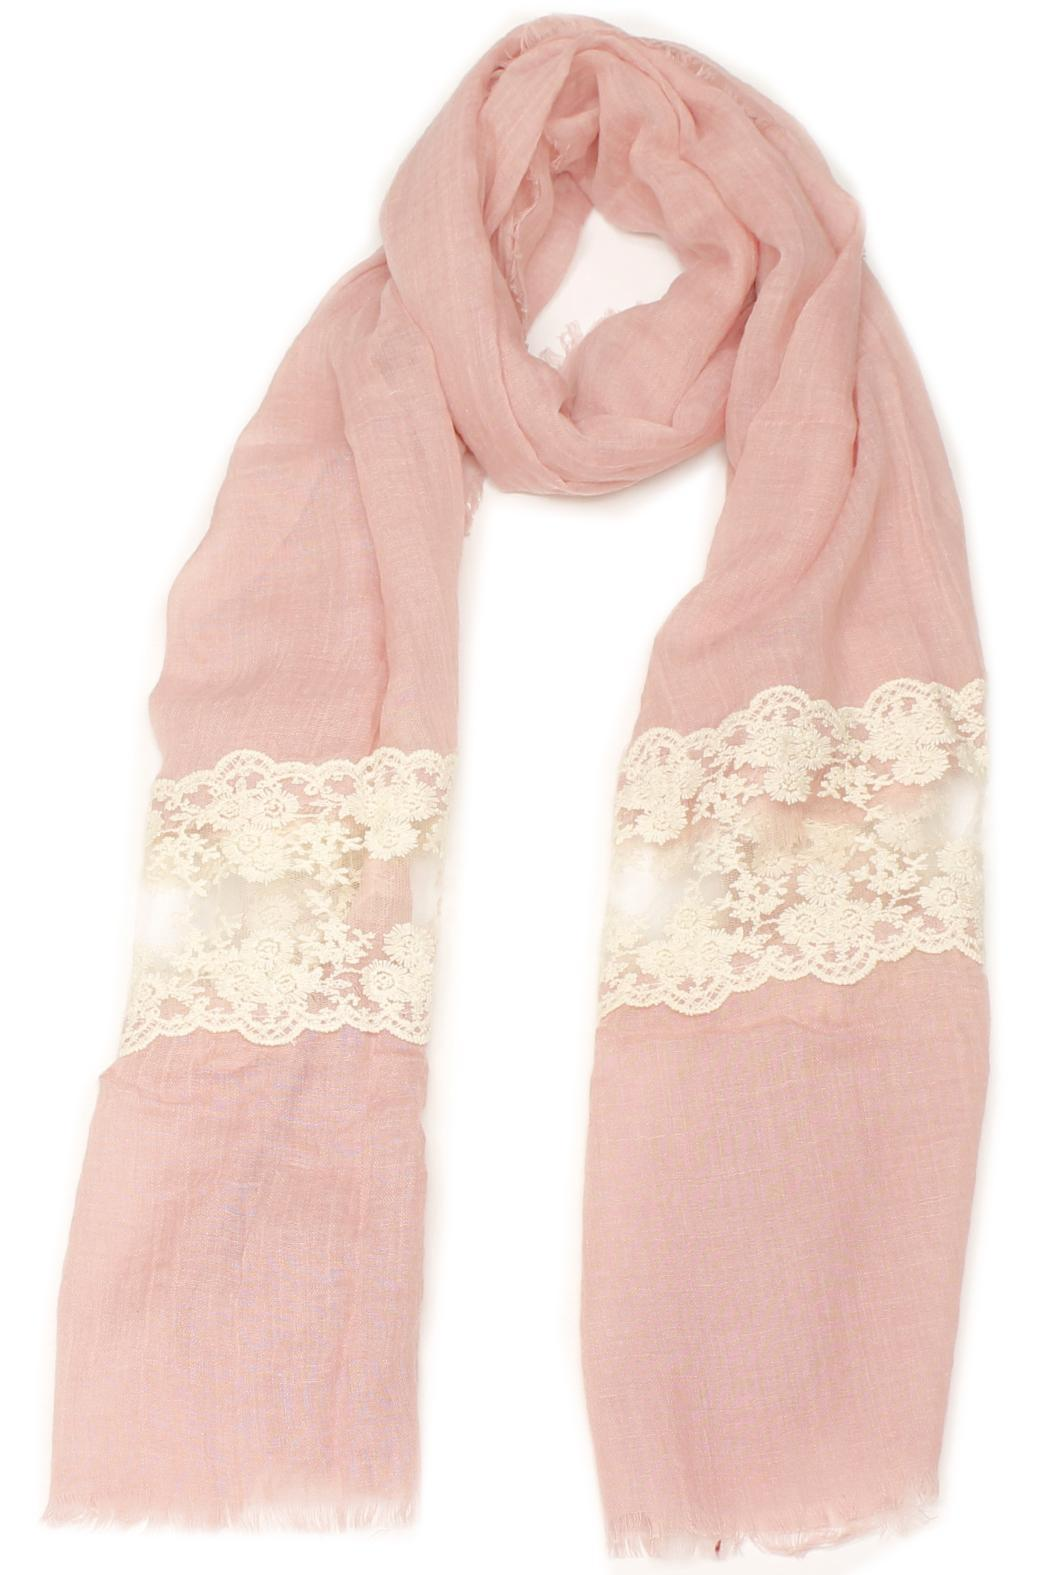 Violet Del Mar French Lace Scarf - Main Image